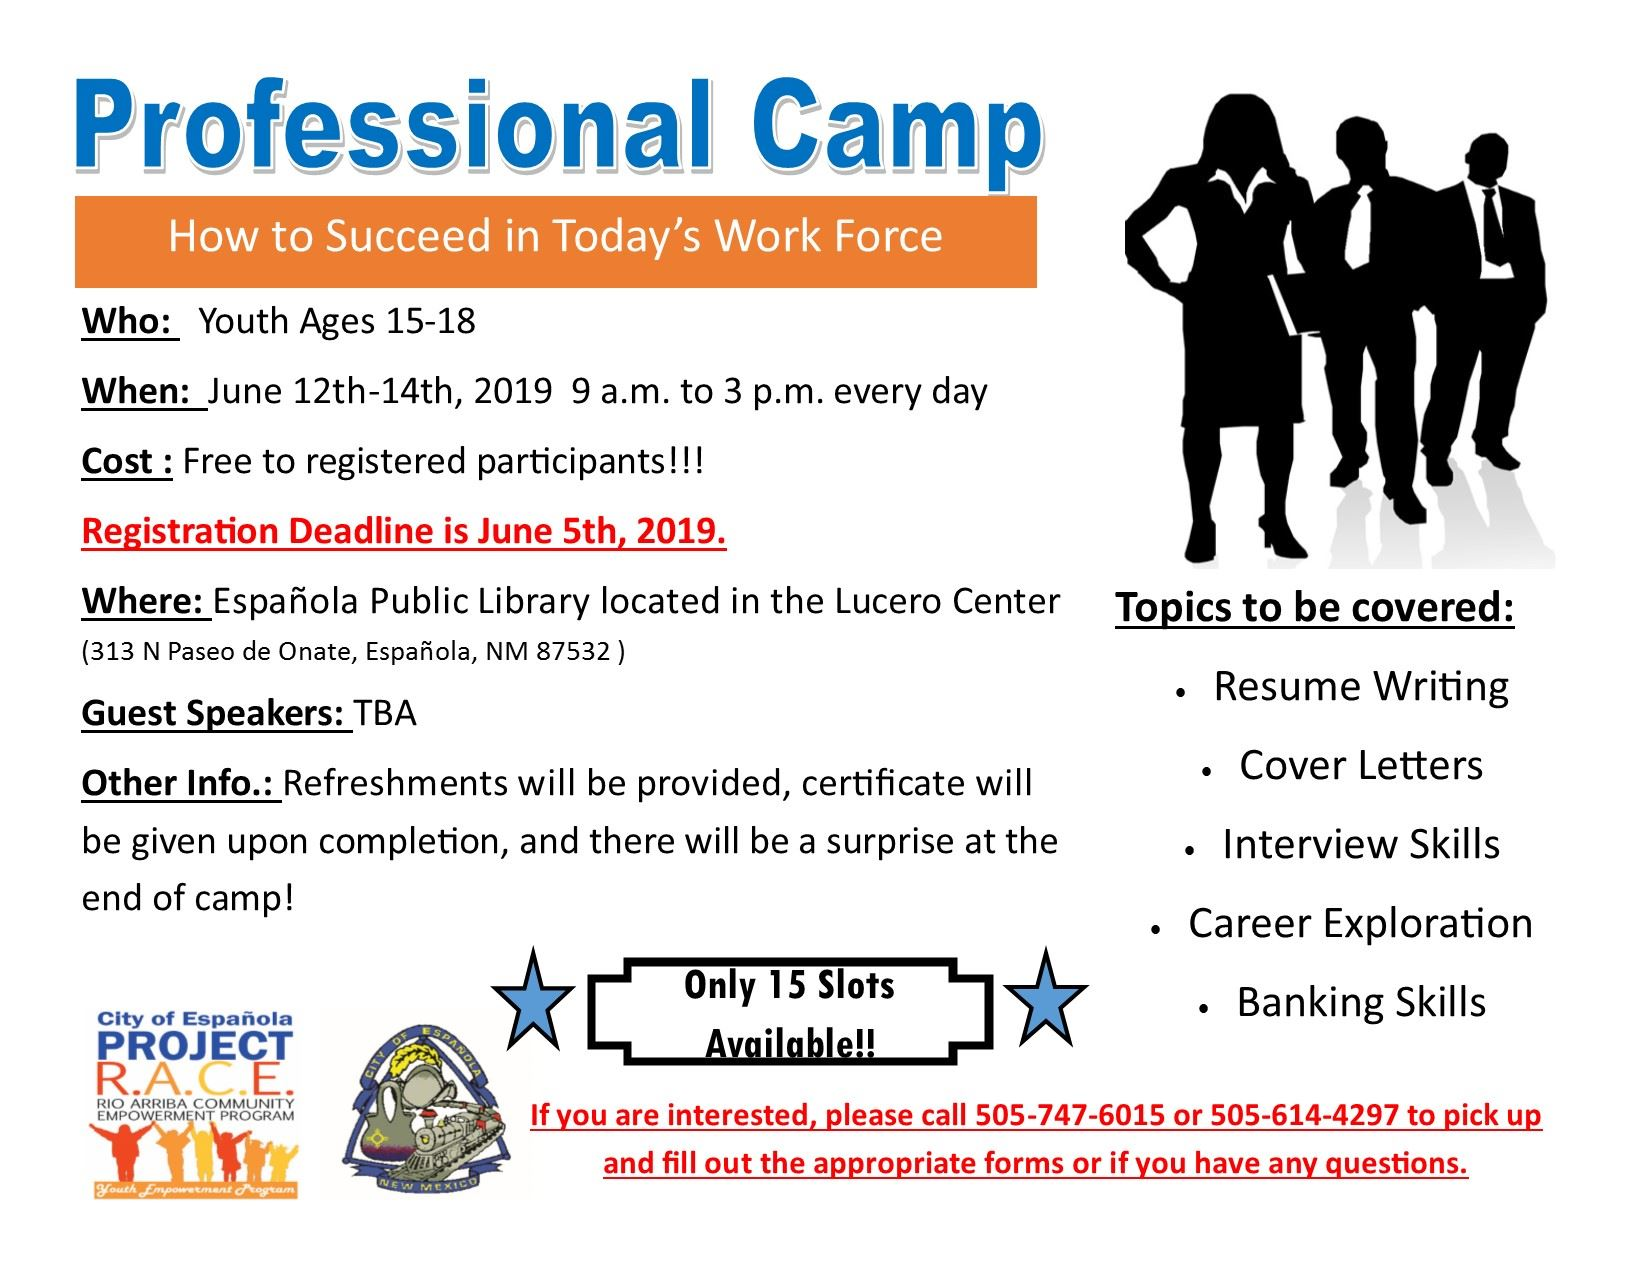 Professional Camp flyer